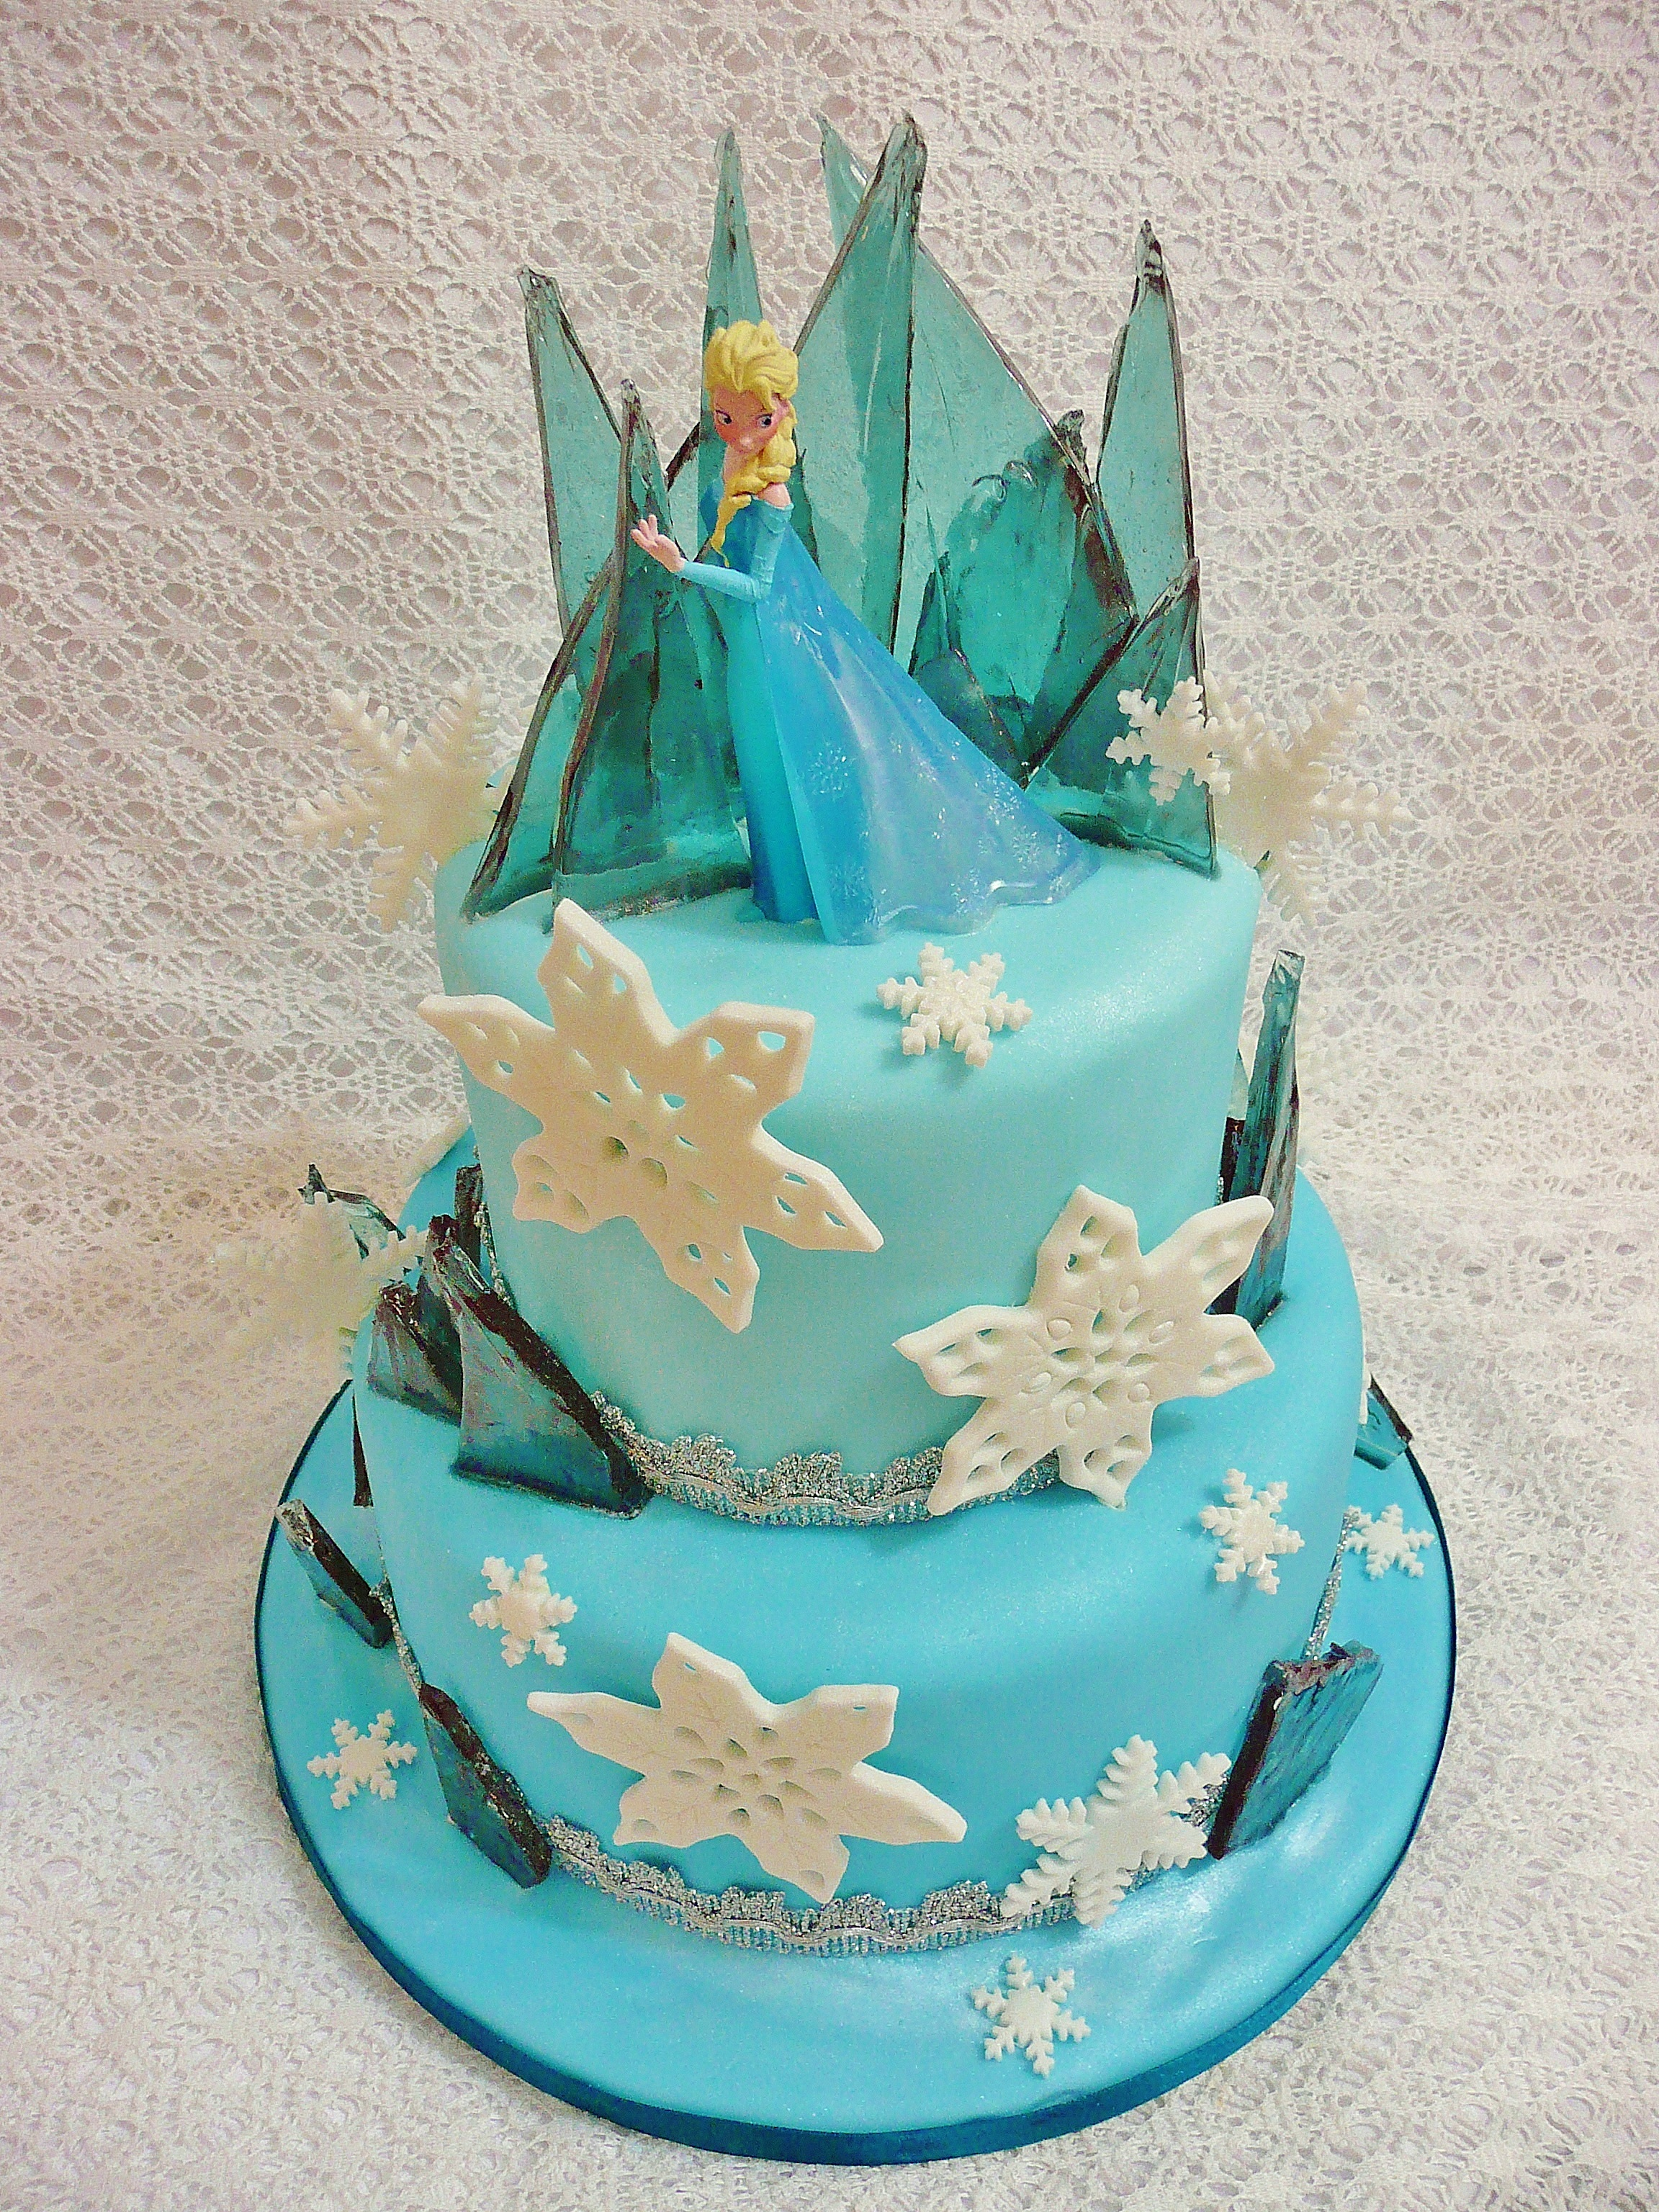 Elsa Cake Decoration Ideas : elsa frozen cake designs Quotes